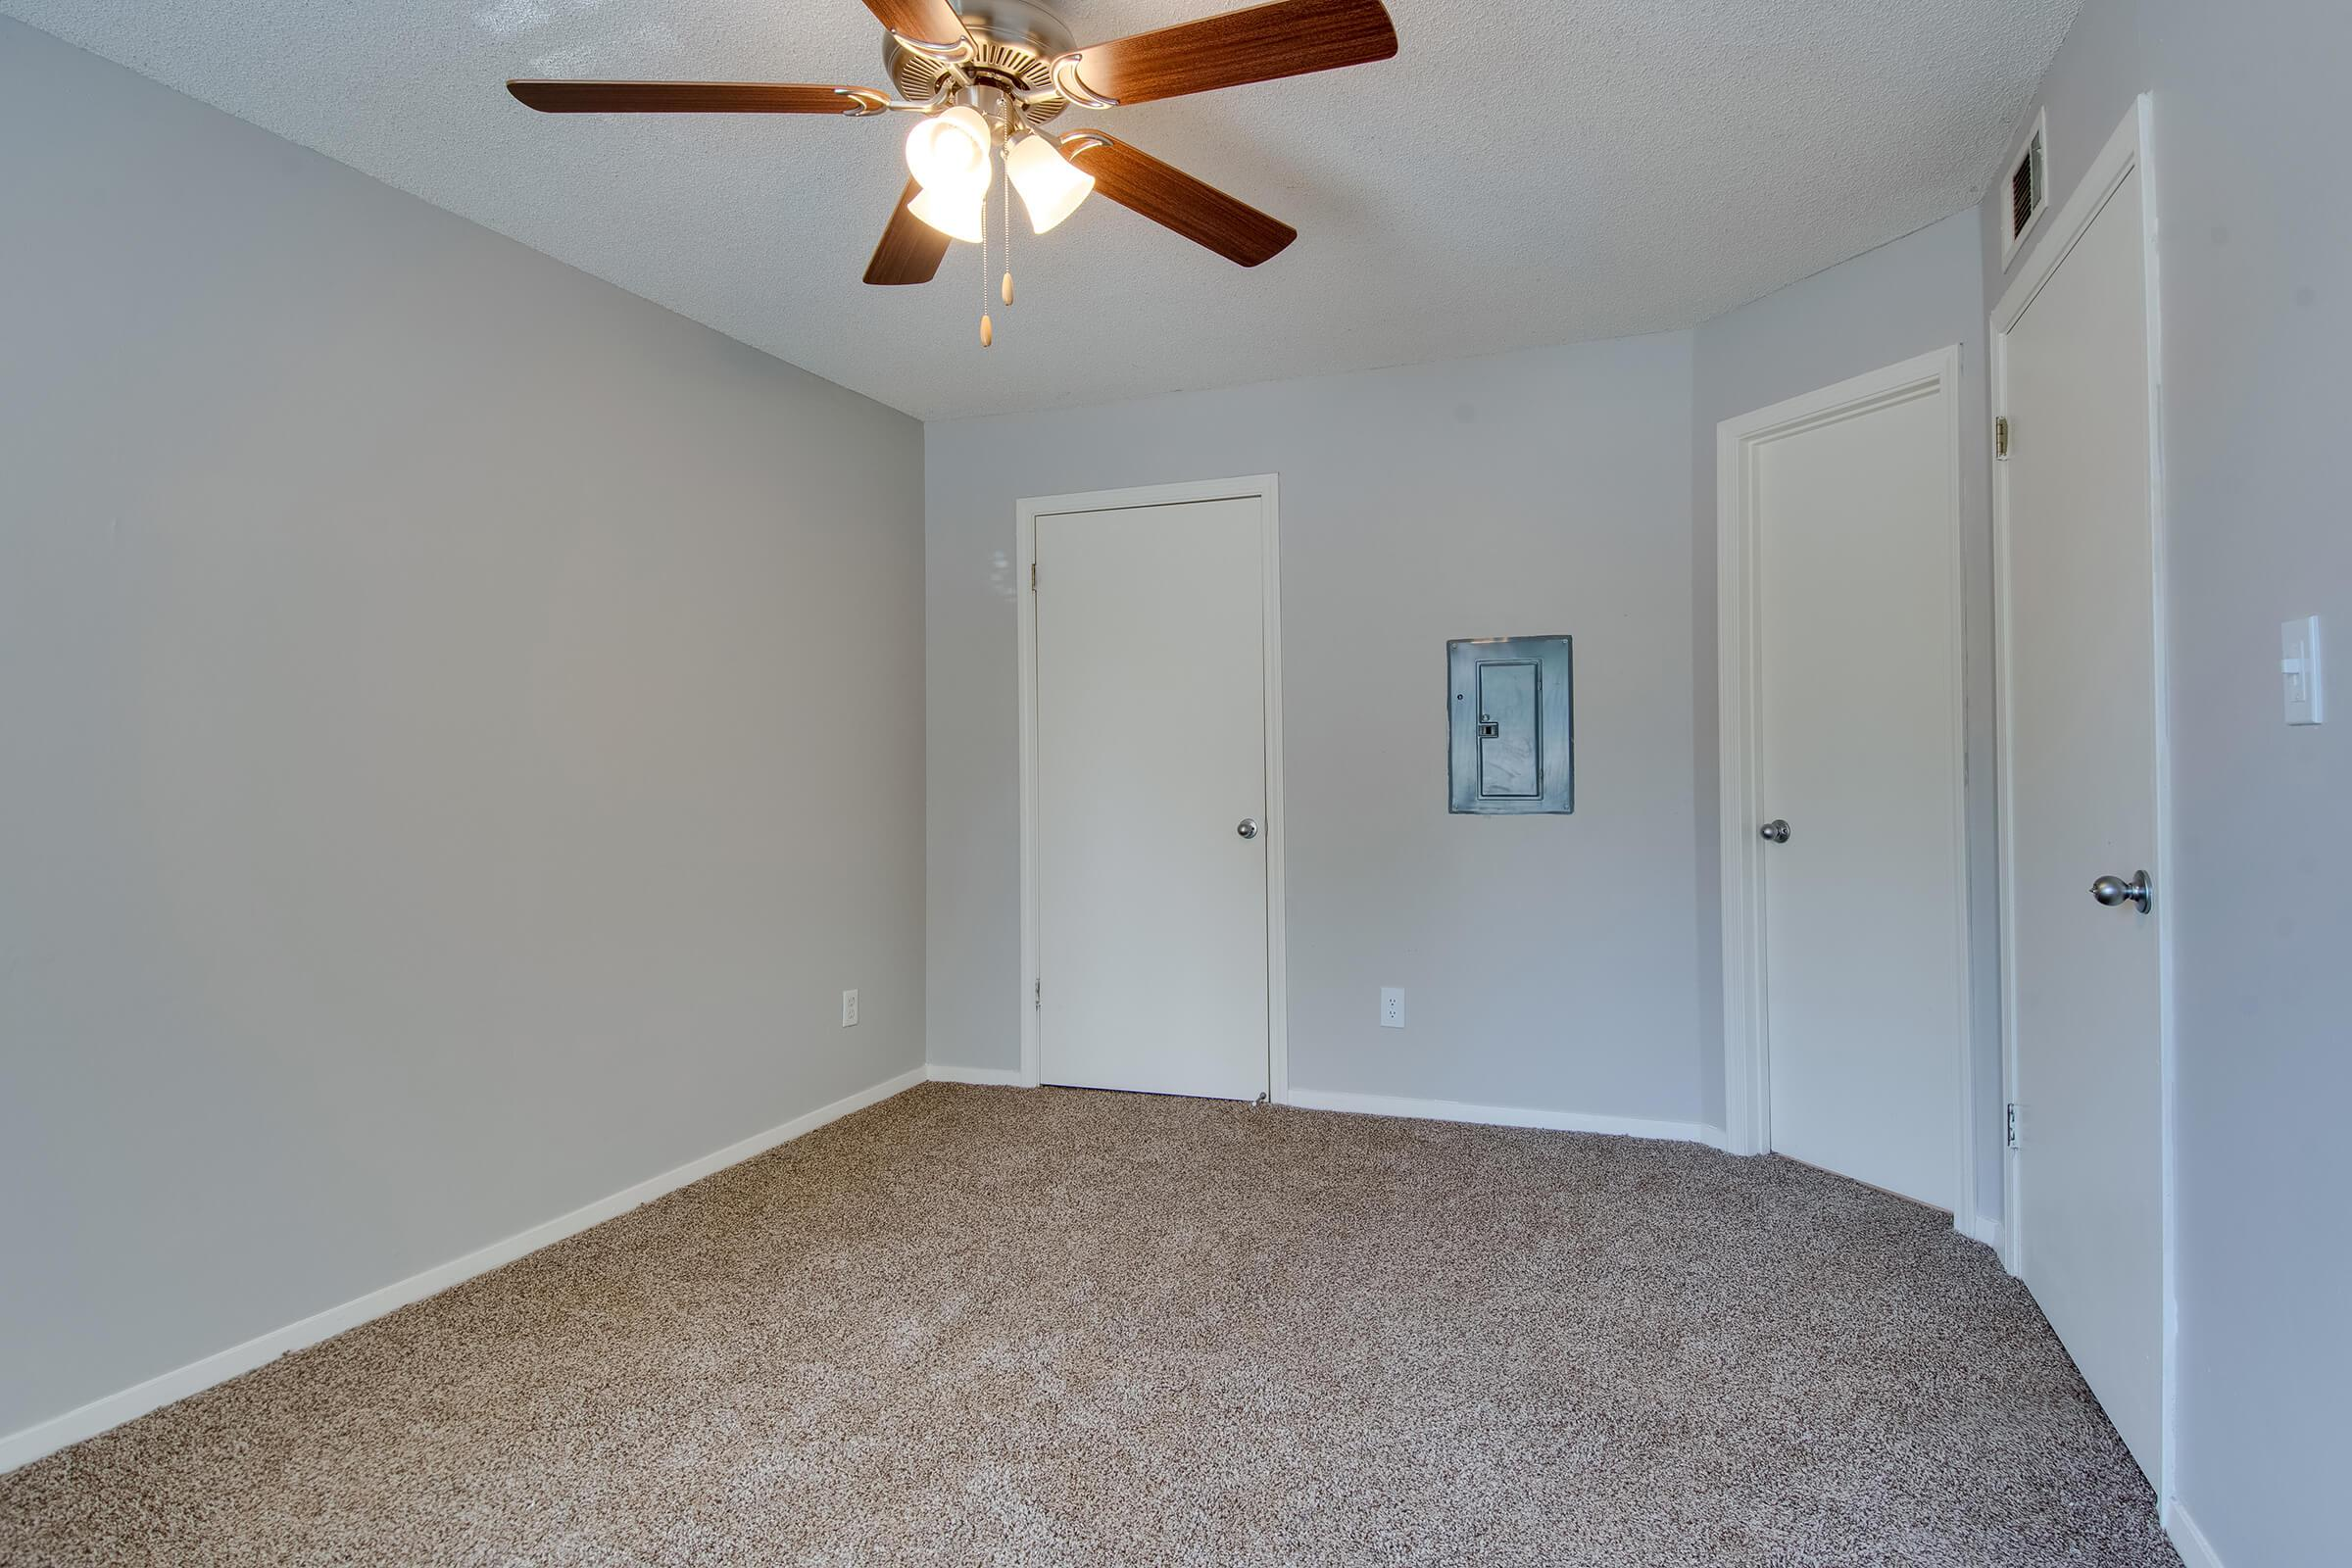 a bedroom with a ceiling fan